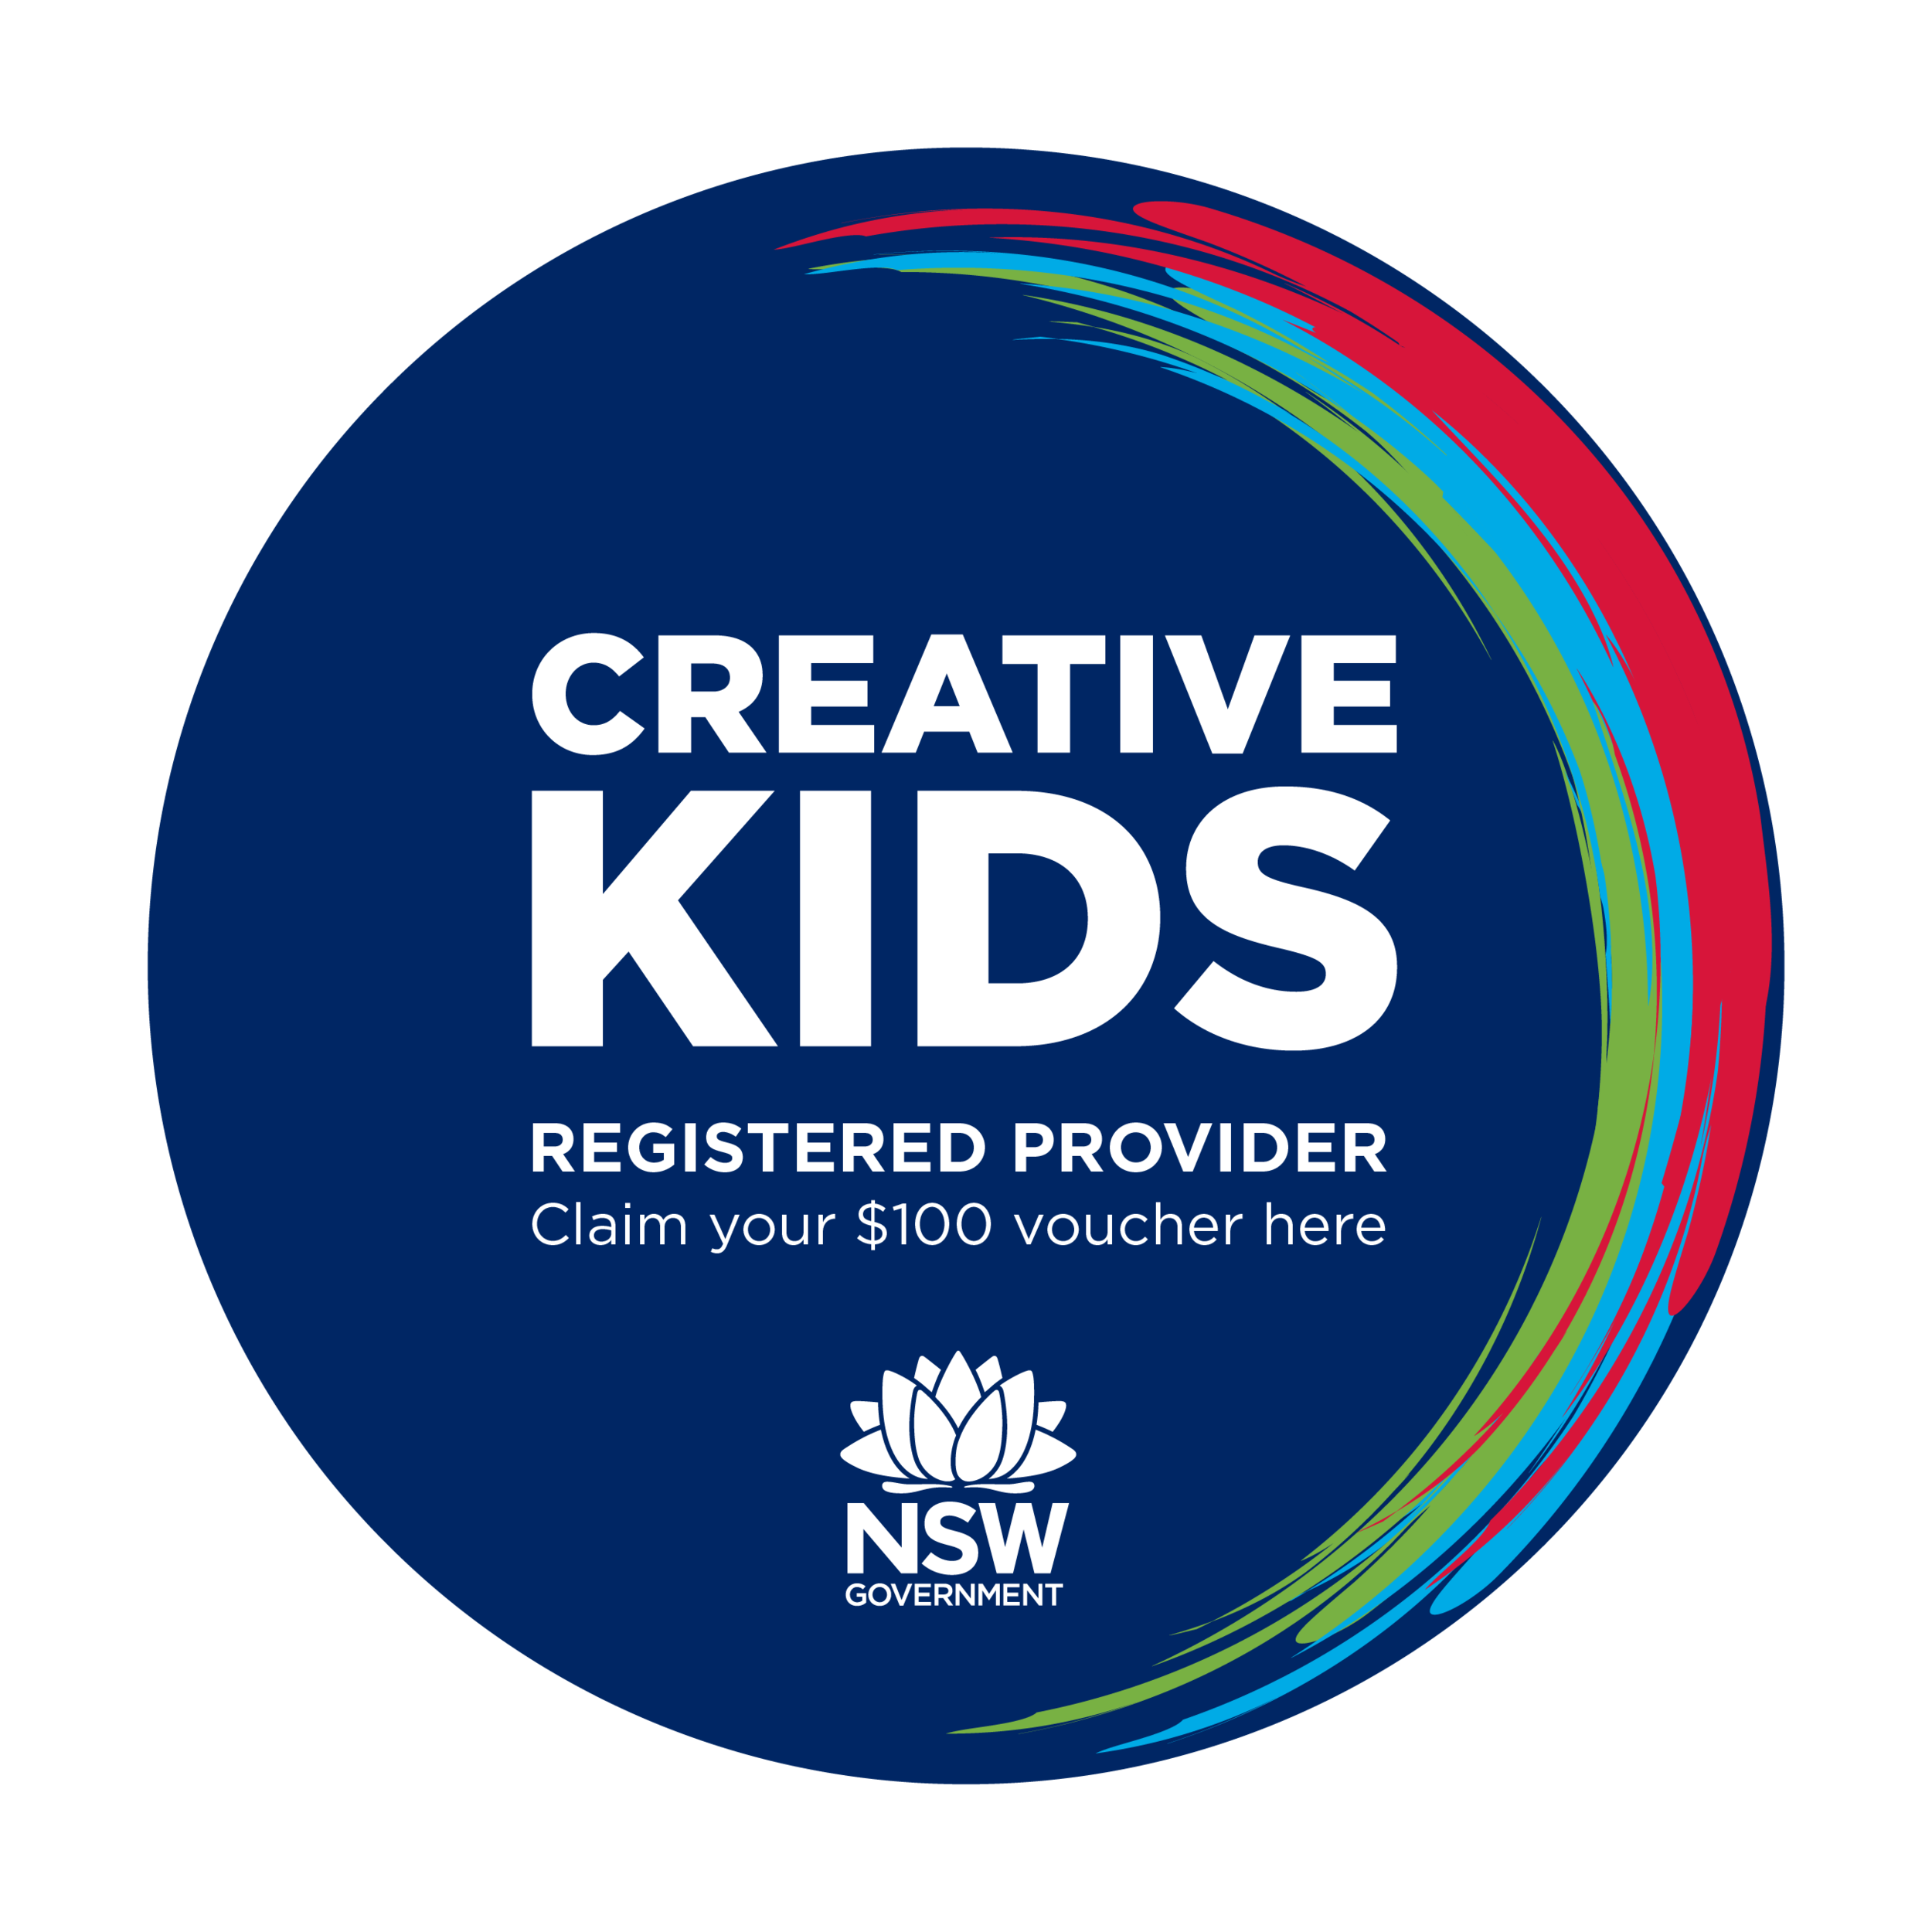 CLICK HERE TO REDEEM YOUR CREATIVE KIDS VOUCHER WITH US